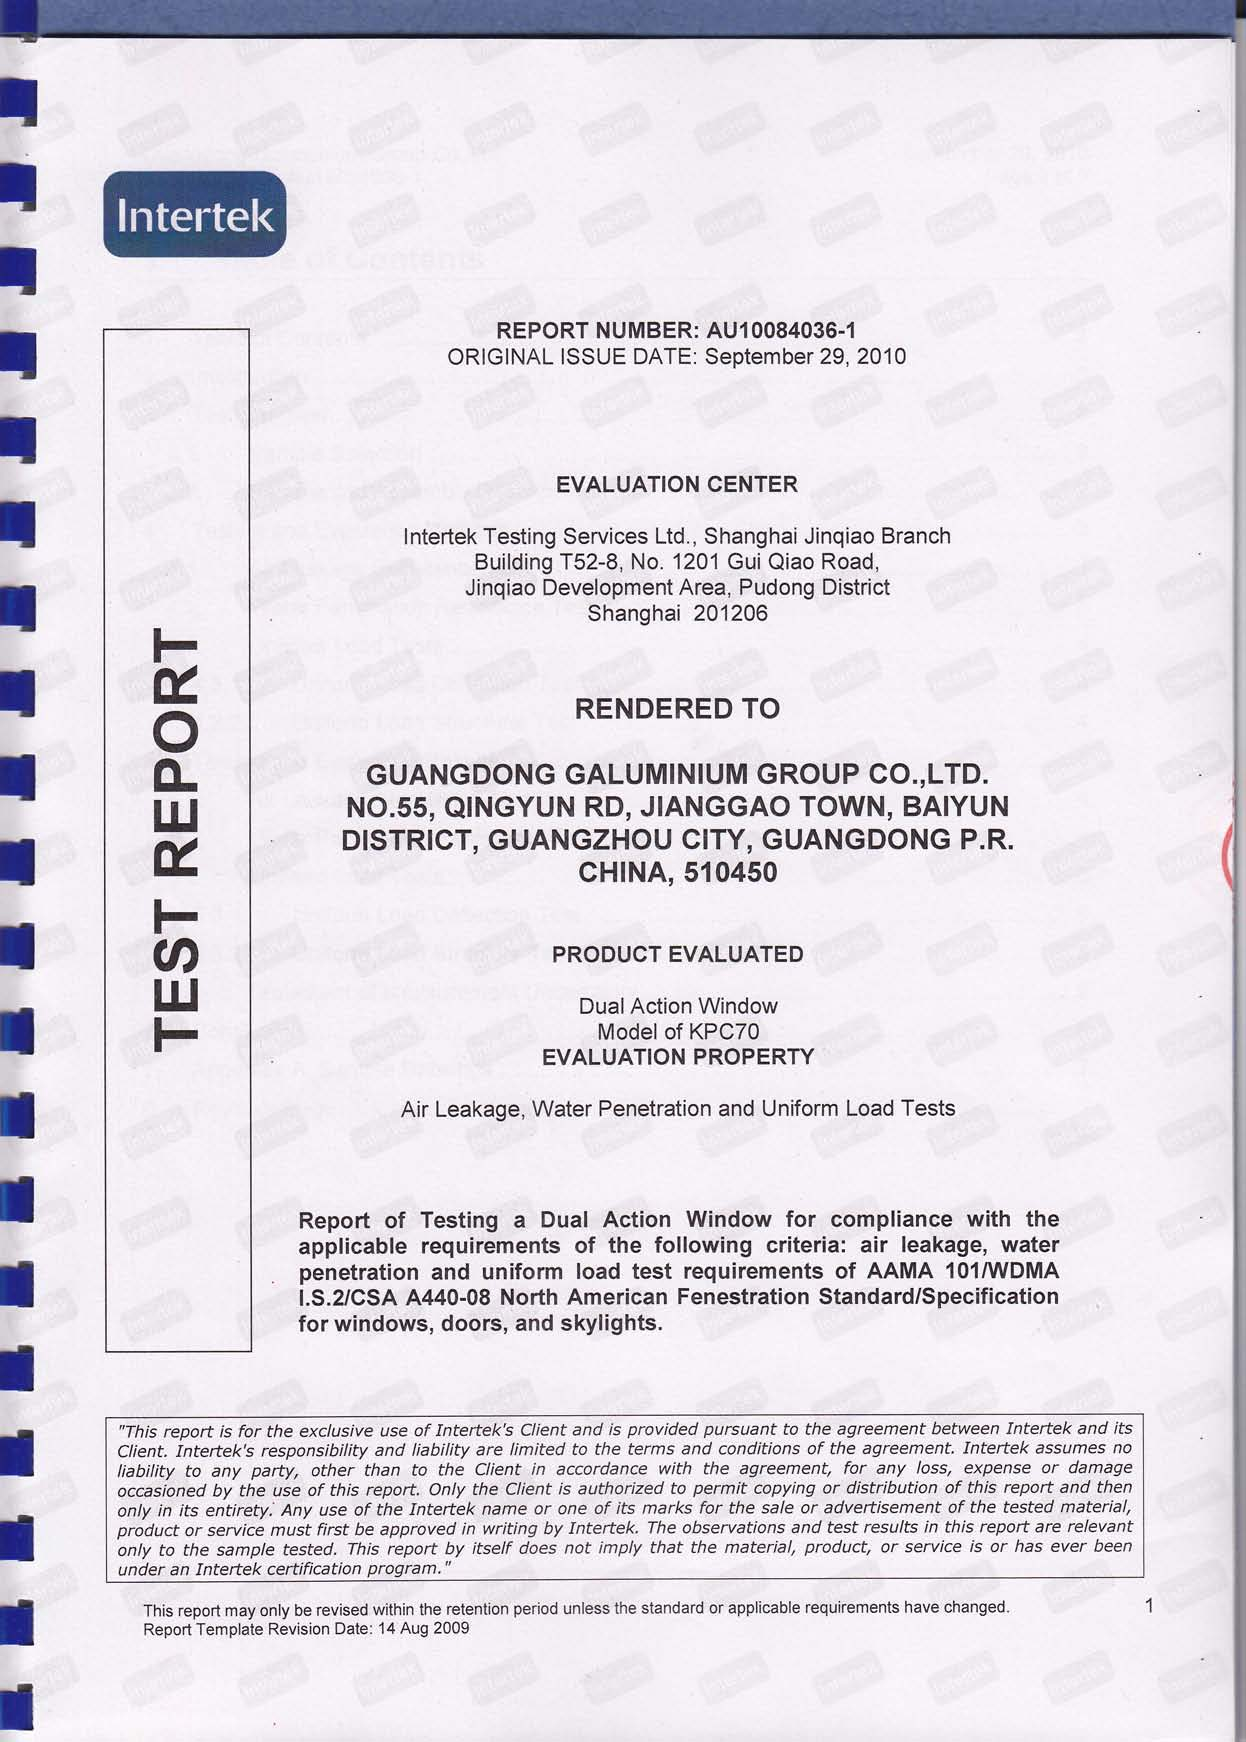 AAMA North American Fenestration Standard test report